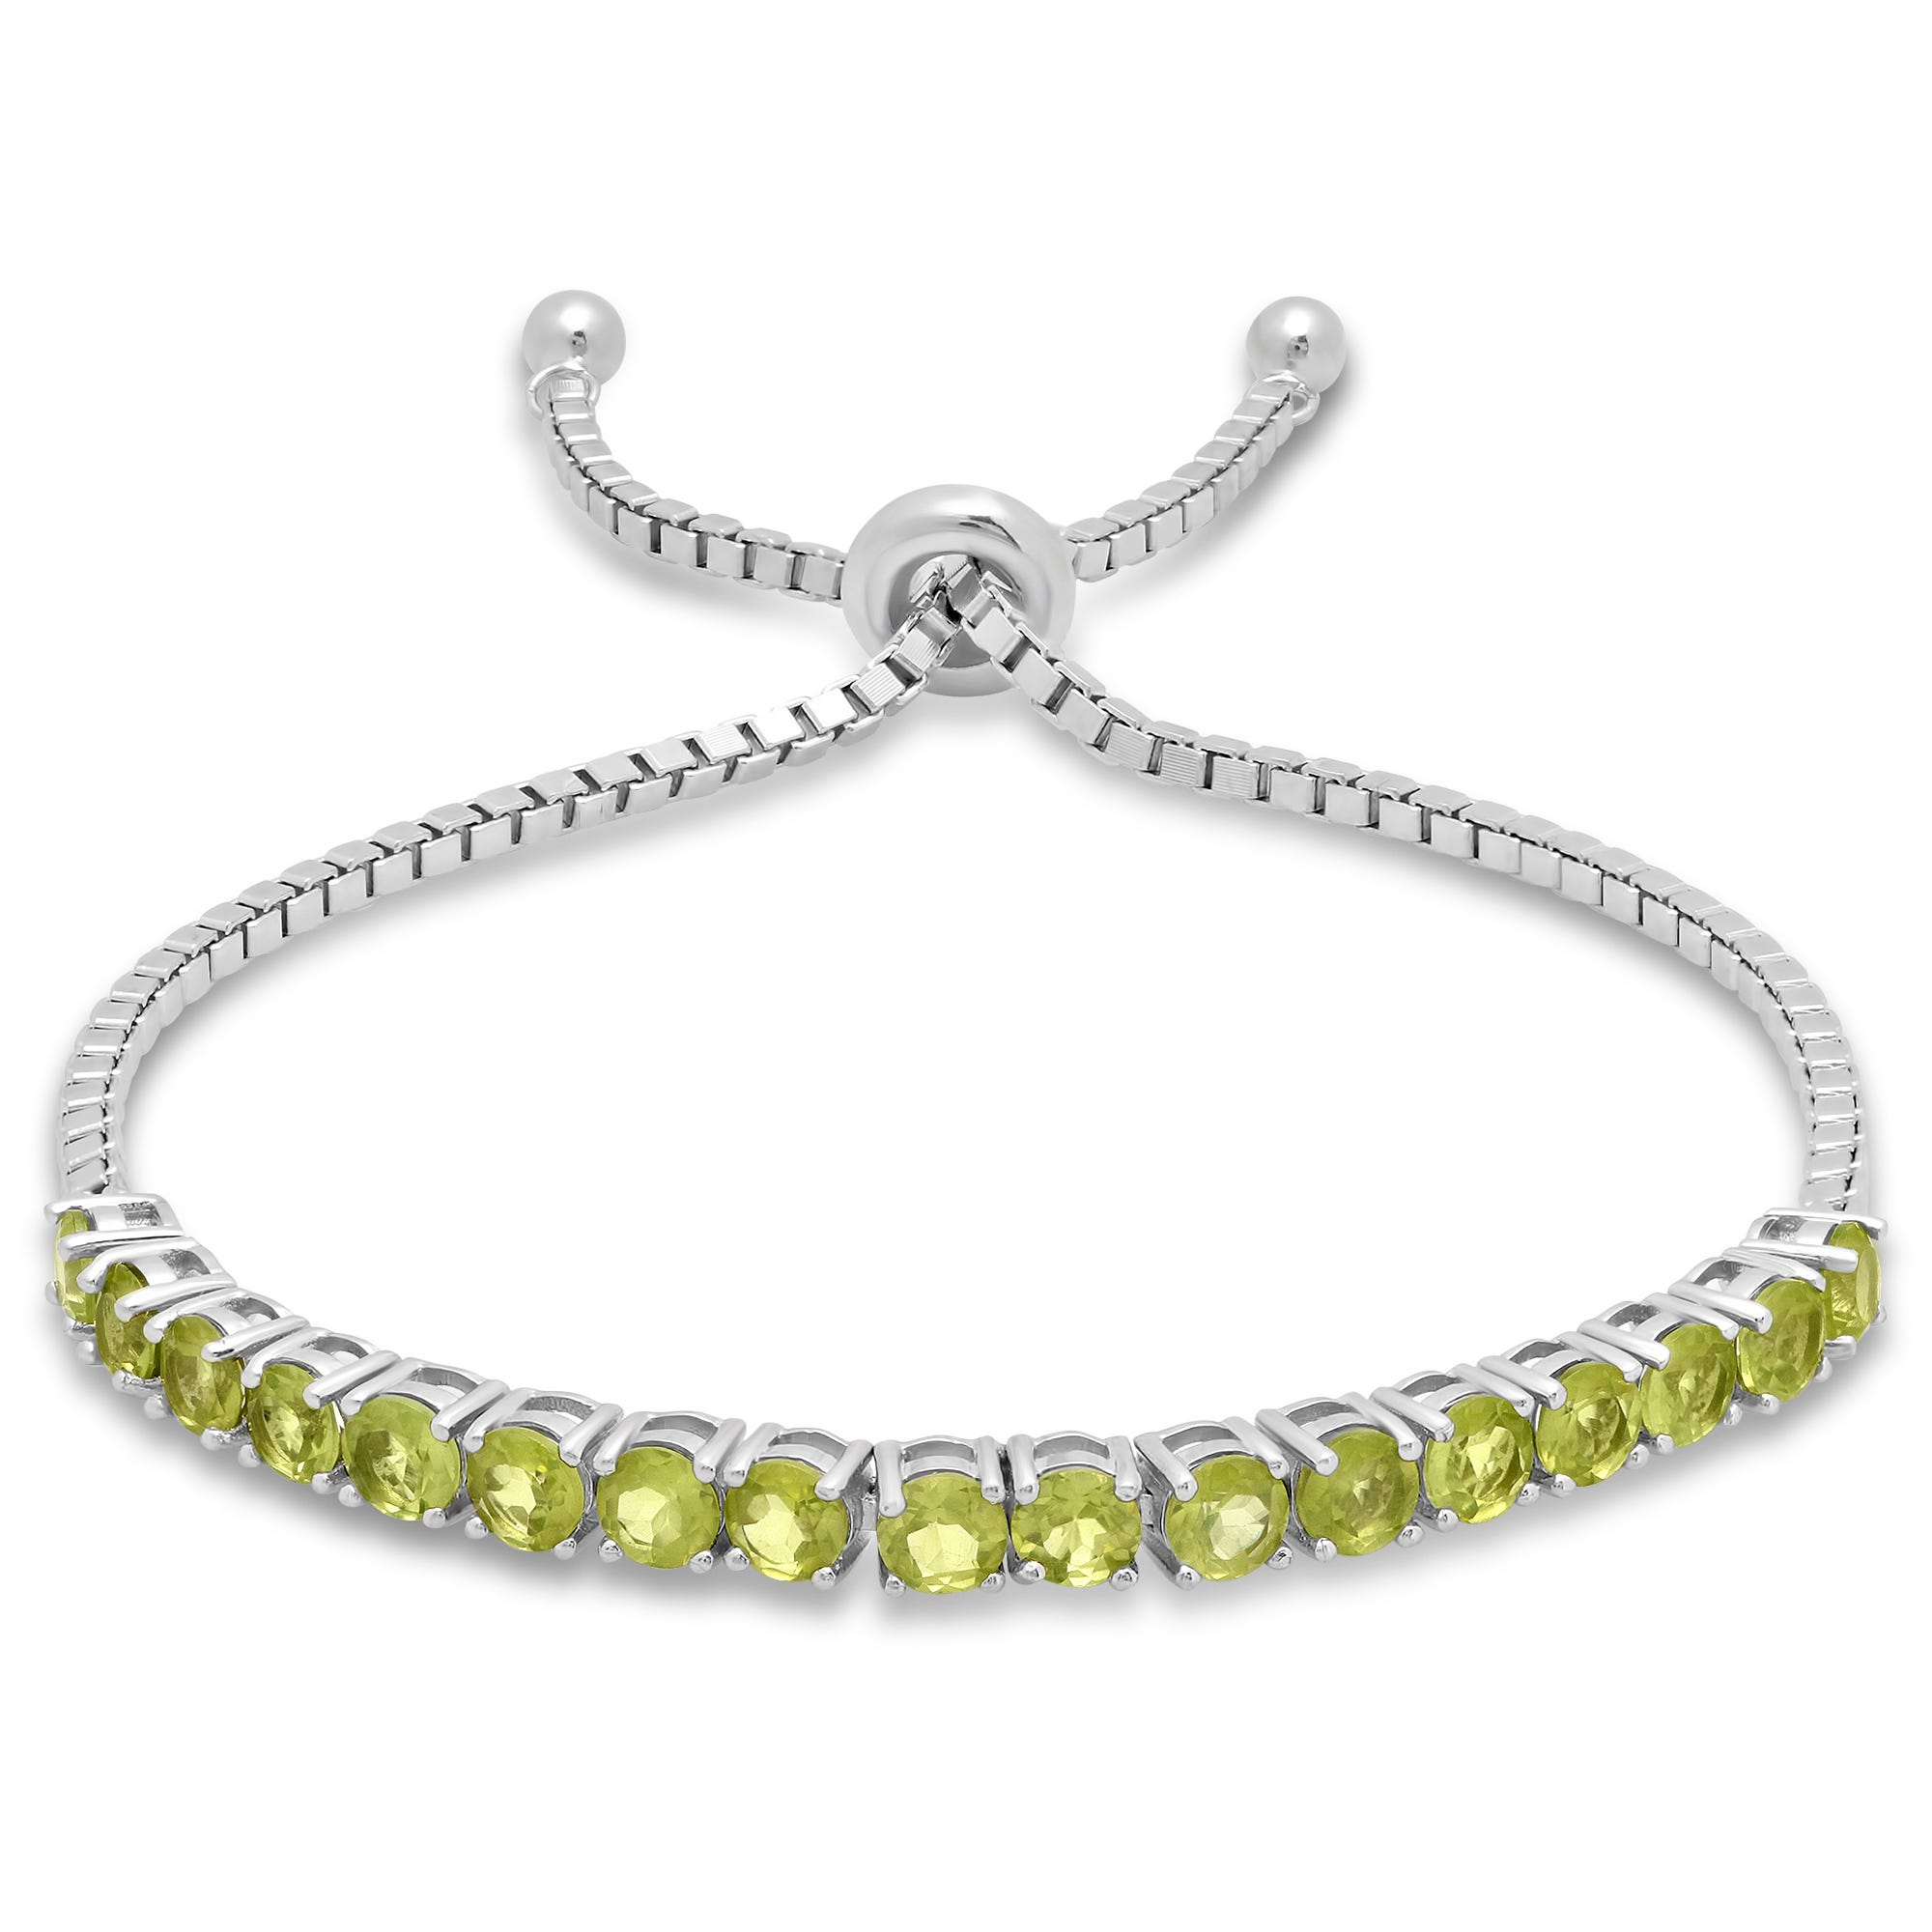 Peridot Adjustable Bolo Bracelet in Sterling Silver